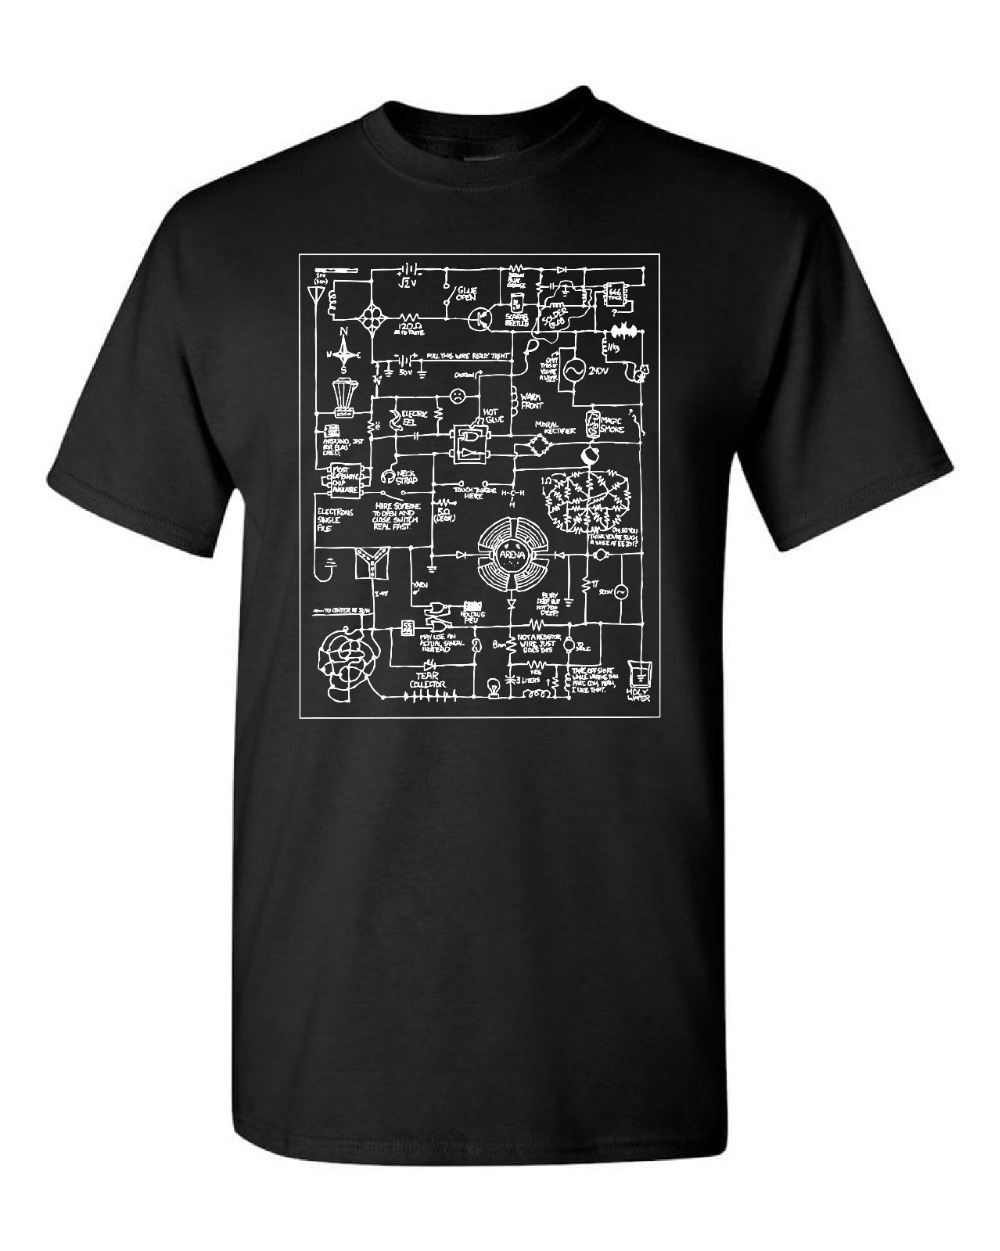 New Fashion T Shirt Graphic Letter T-shirt EE Electrical Engineering Electronics Wacky Schematic Men's Black Funny O Neck